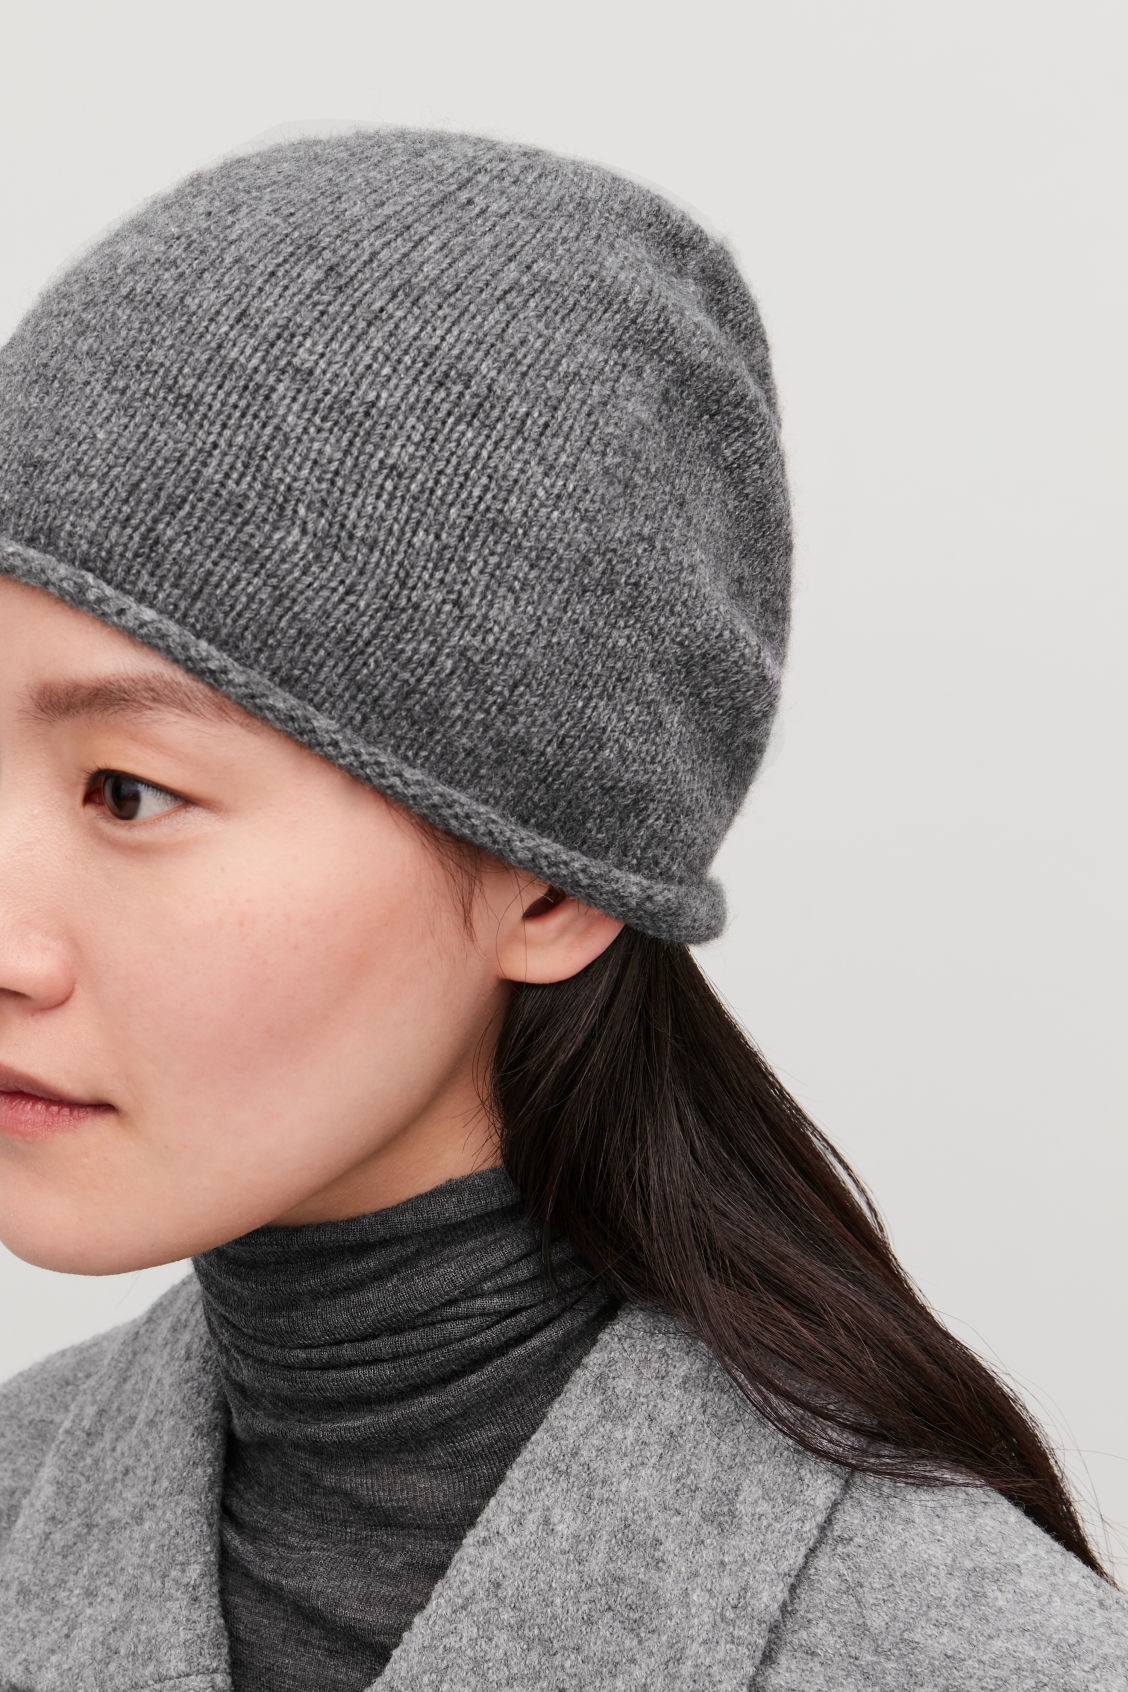 Detailed image of Cos cashmere hat in grey 6d1291b5d221